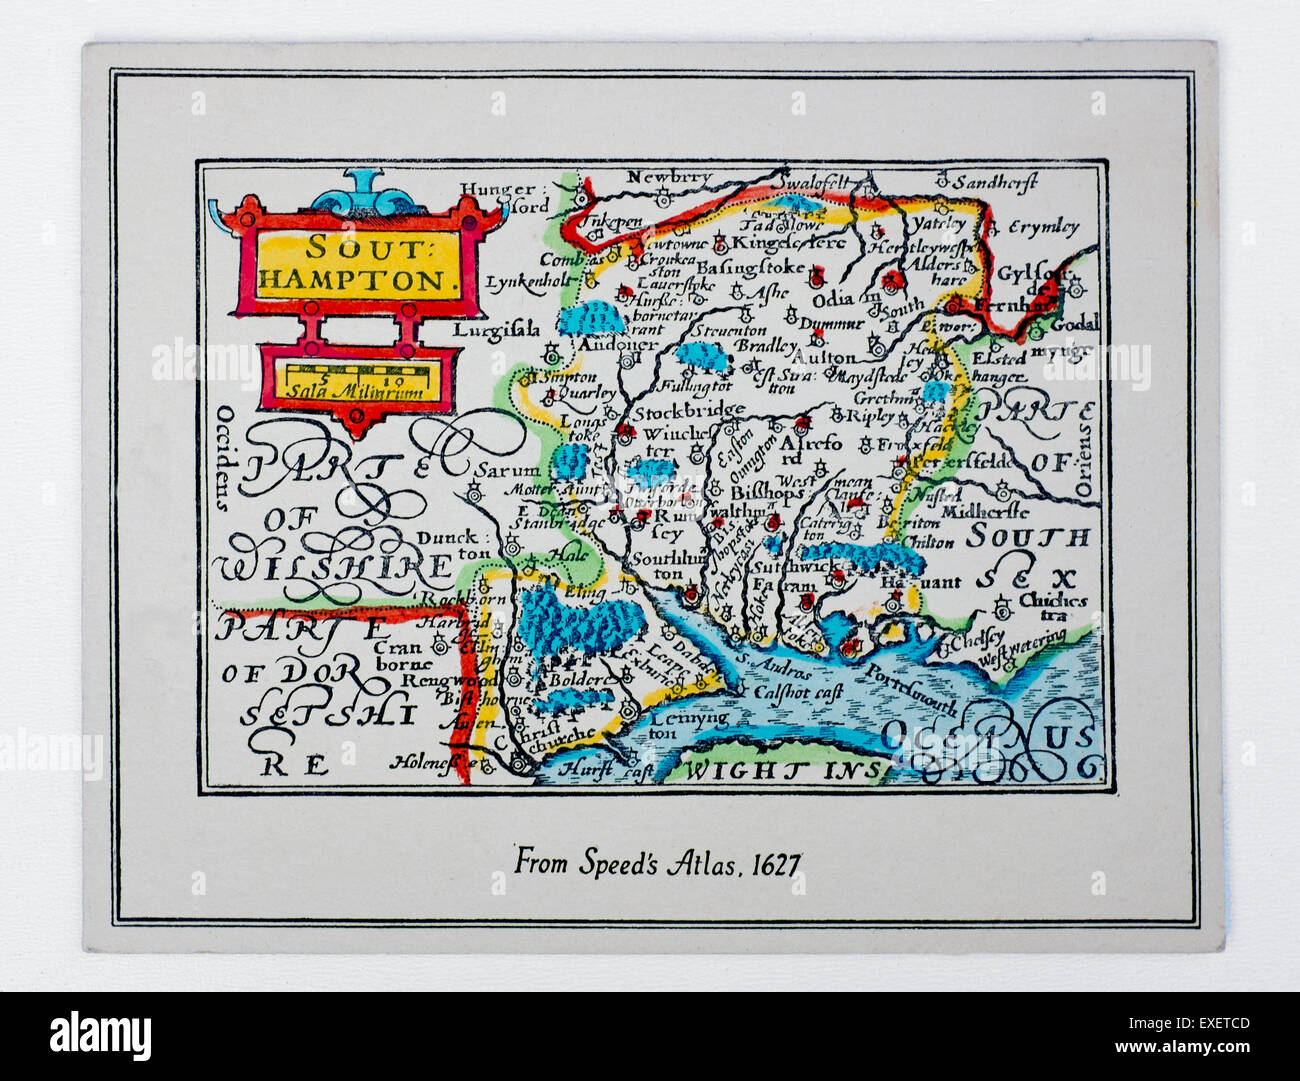 Antique or Vintage Map of Southampton and Hampshire from Speeds Atlas 1627 - Stock Image